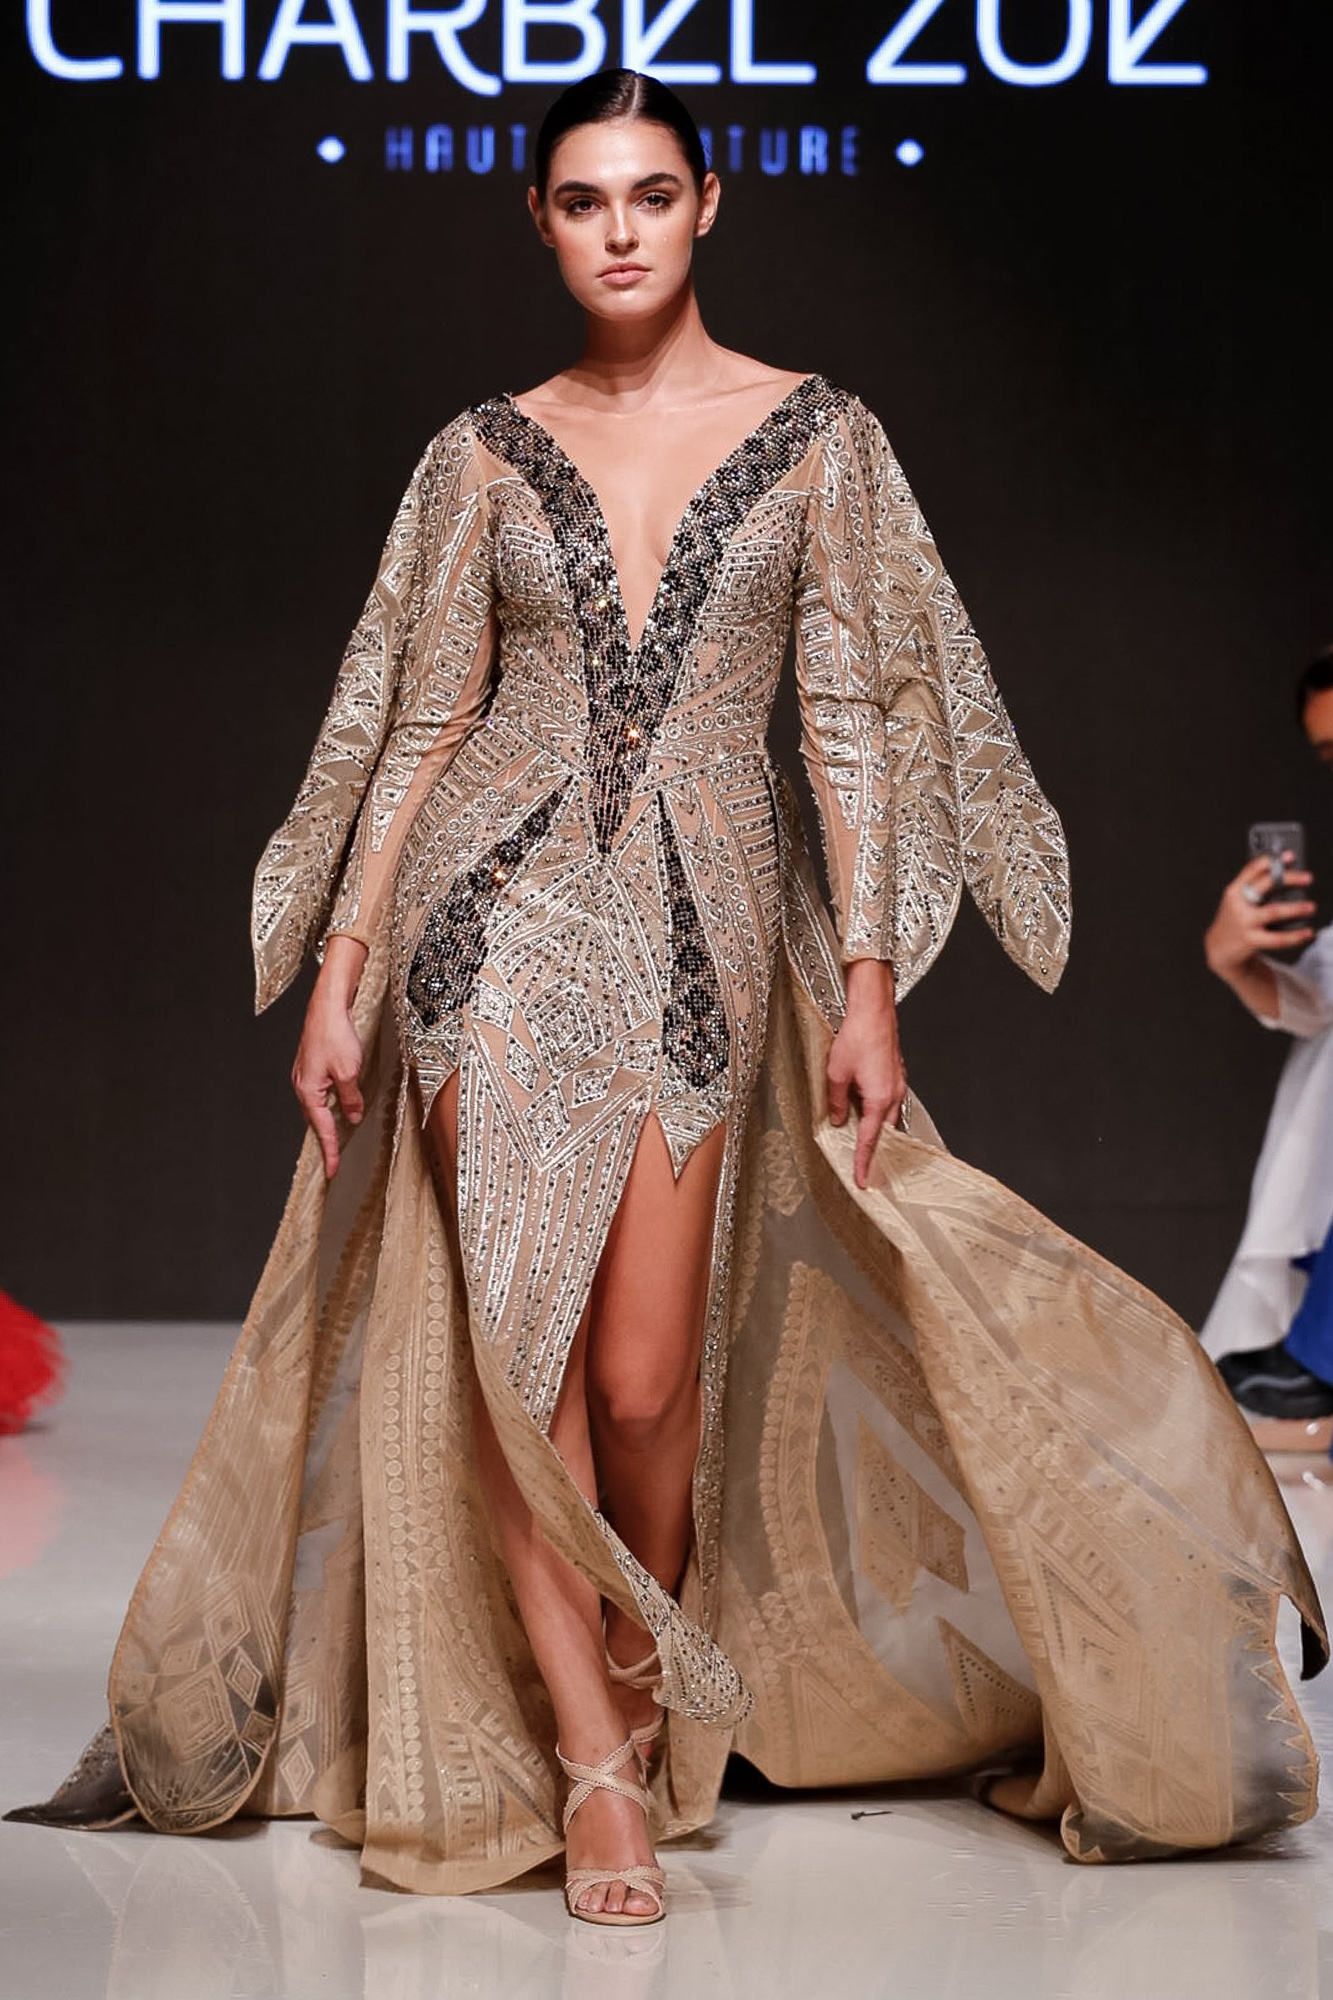 Charbel Zoe fashion show, Arab Fashion Week collection Spring Summer 2020 in Dubai